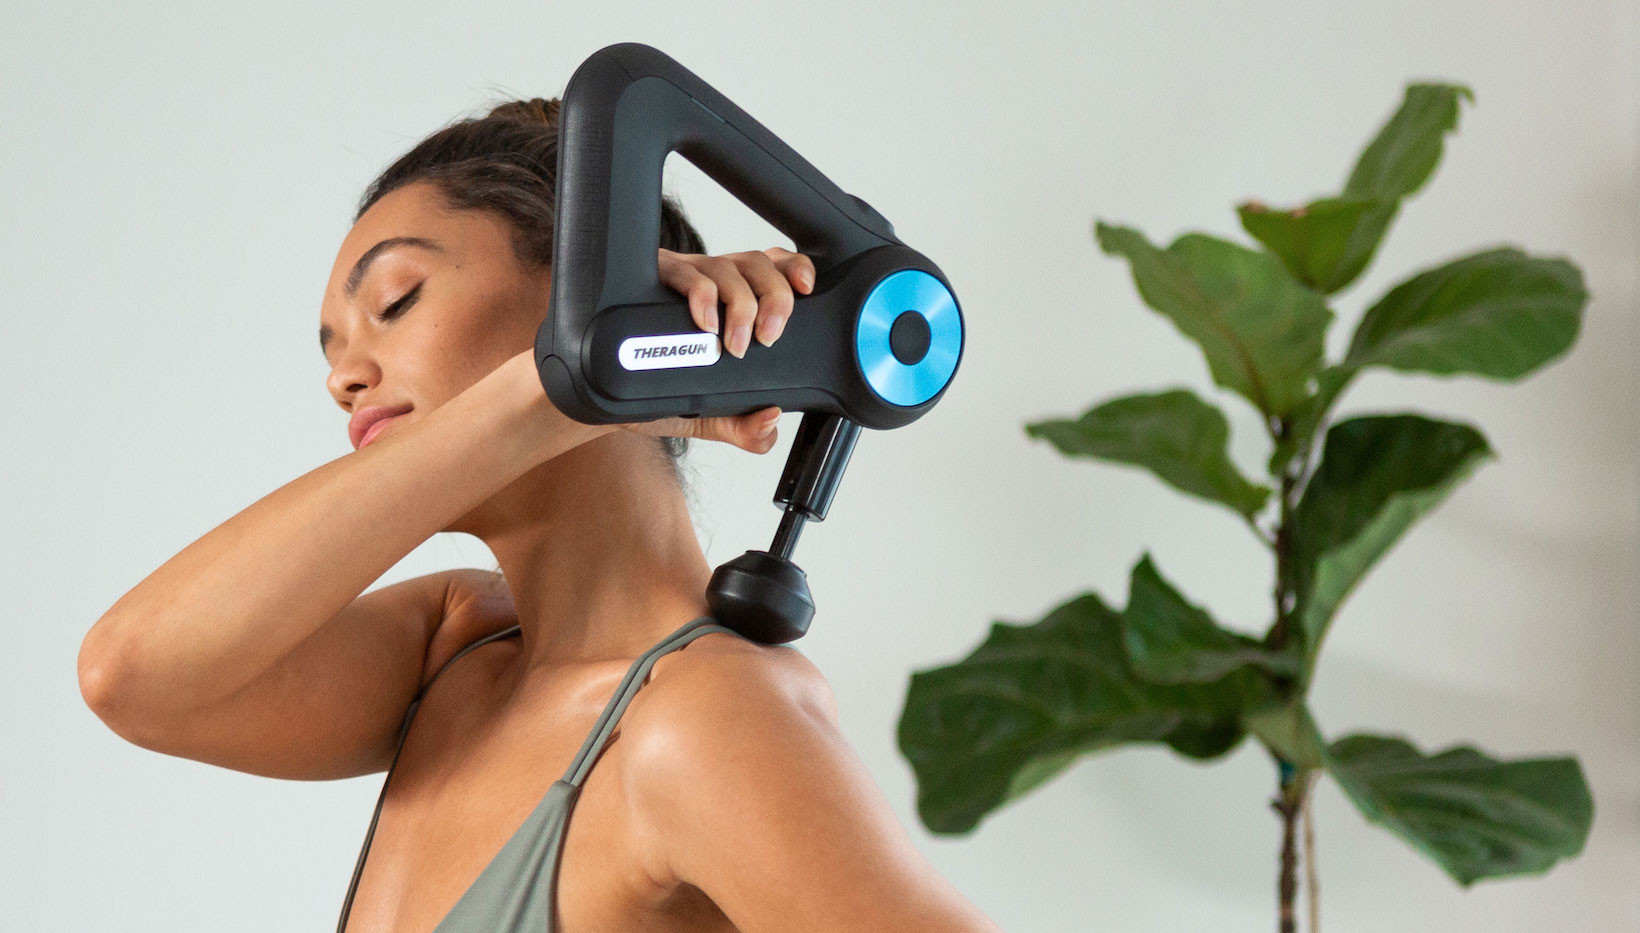 A-Massage-Tool-to-Relieve-Sore-Muscles-a